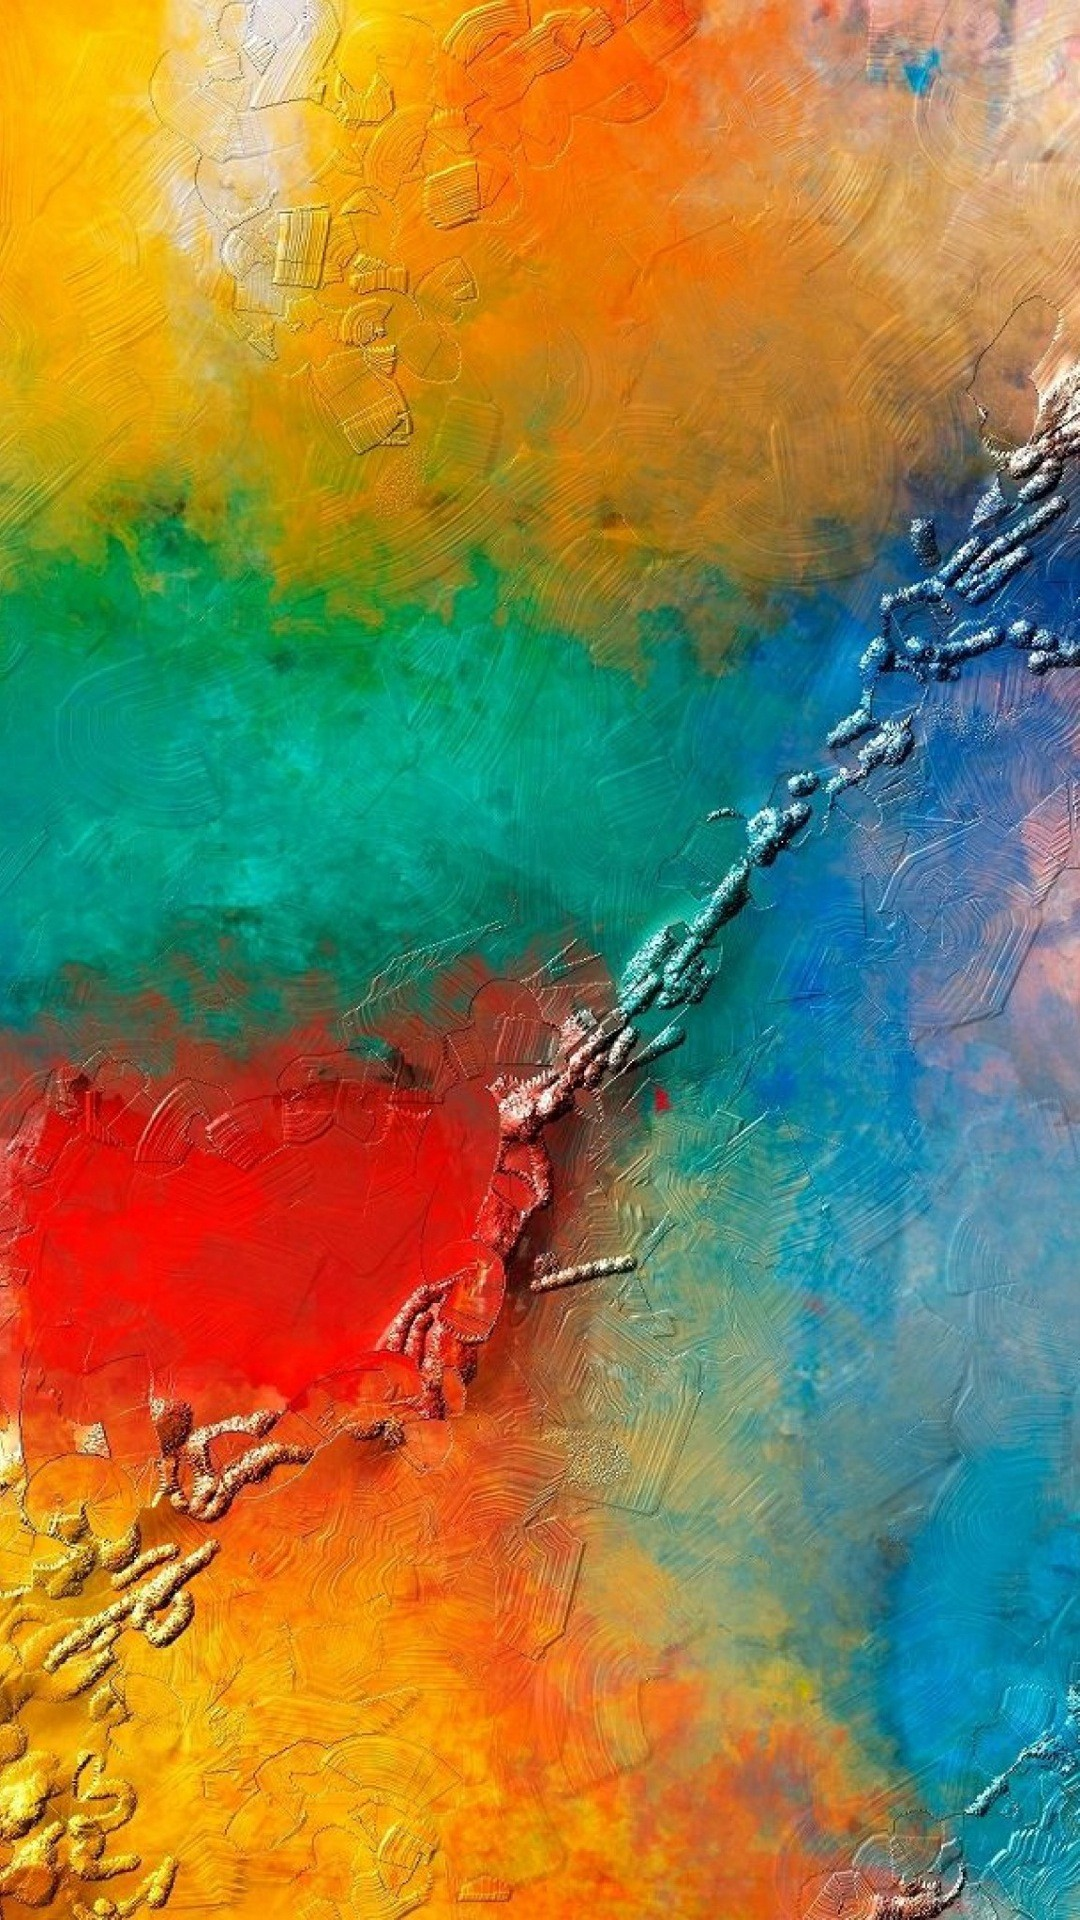 Colorful Phone Images - Best Painting Wallpaper For Mobile - HD Wallpaper